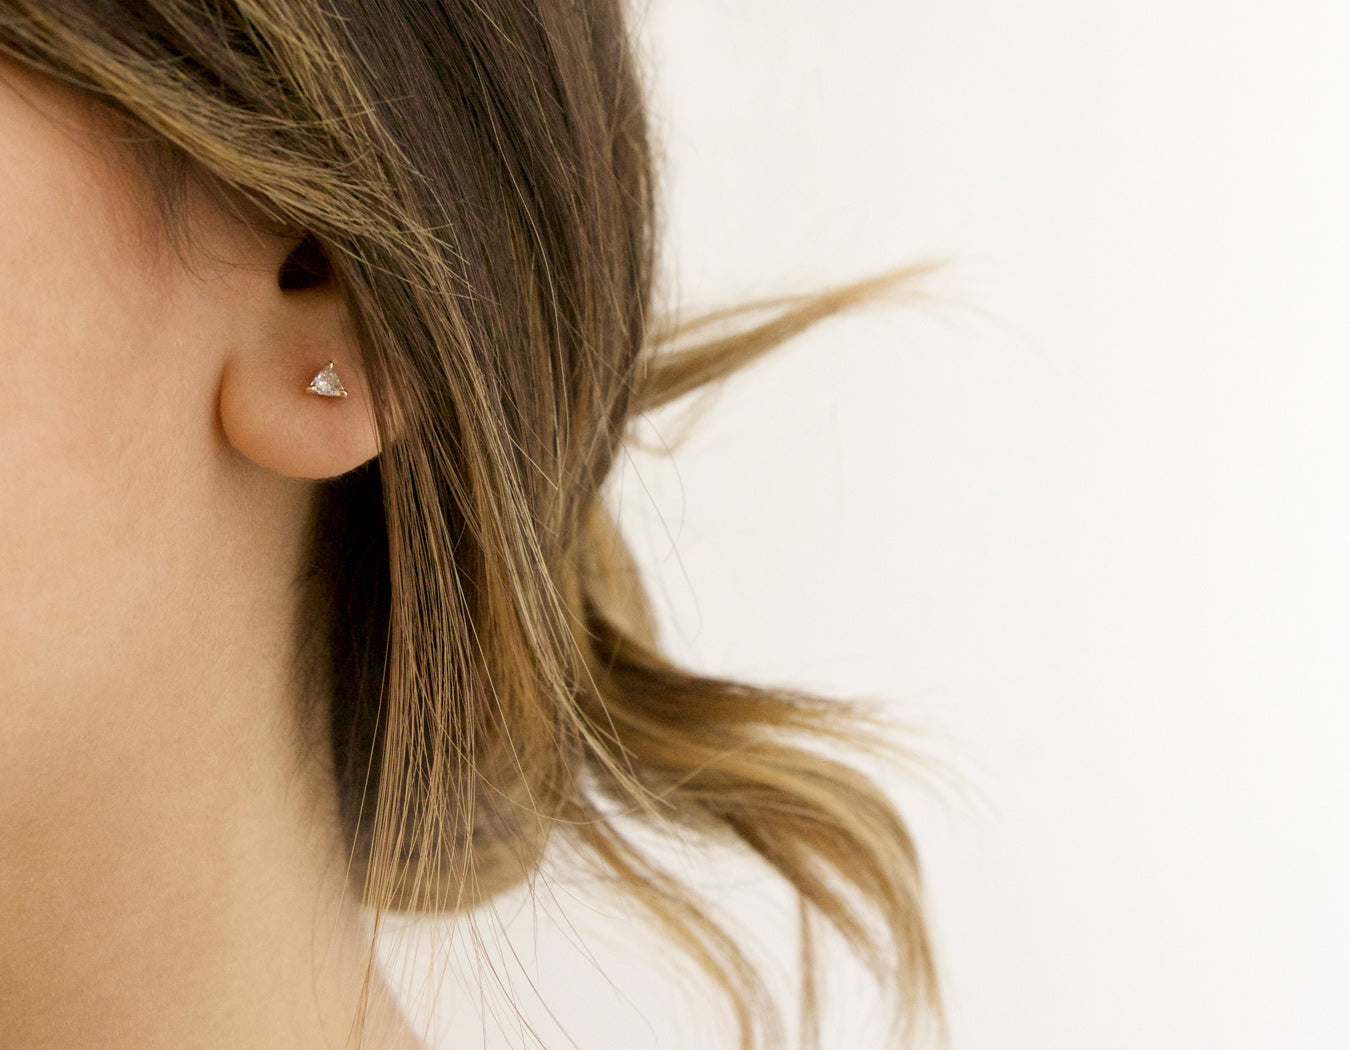 Blonde model wearing simple modern 14k yellow gold Trillion Diamond Earring studs by Vrai & Oro